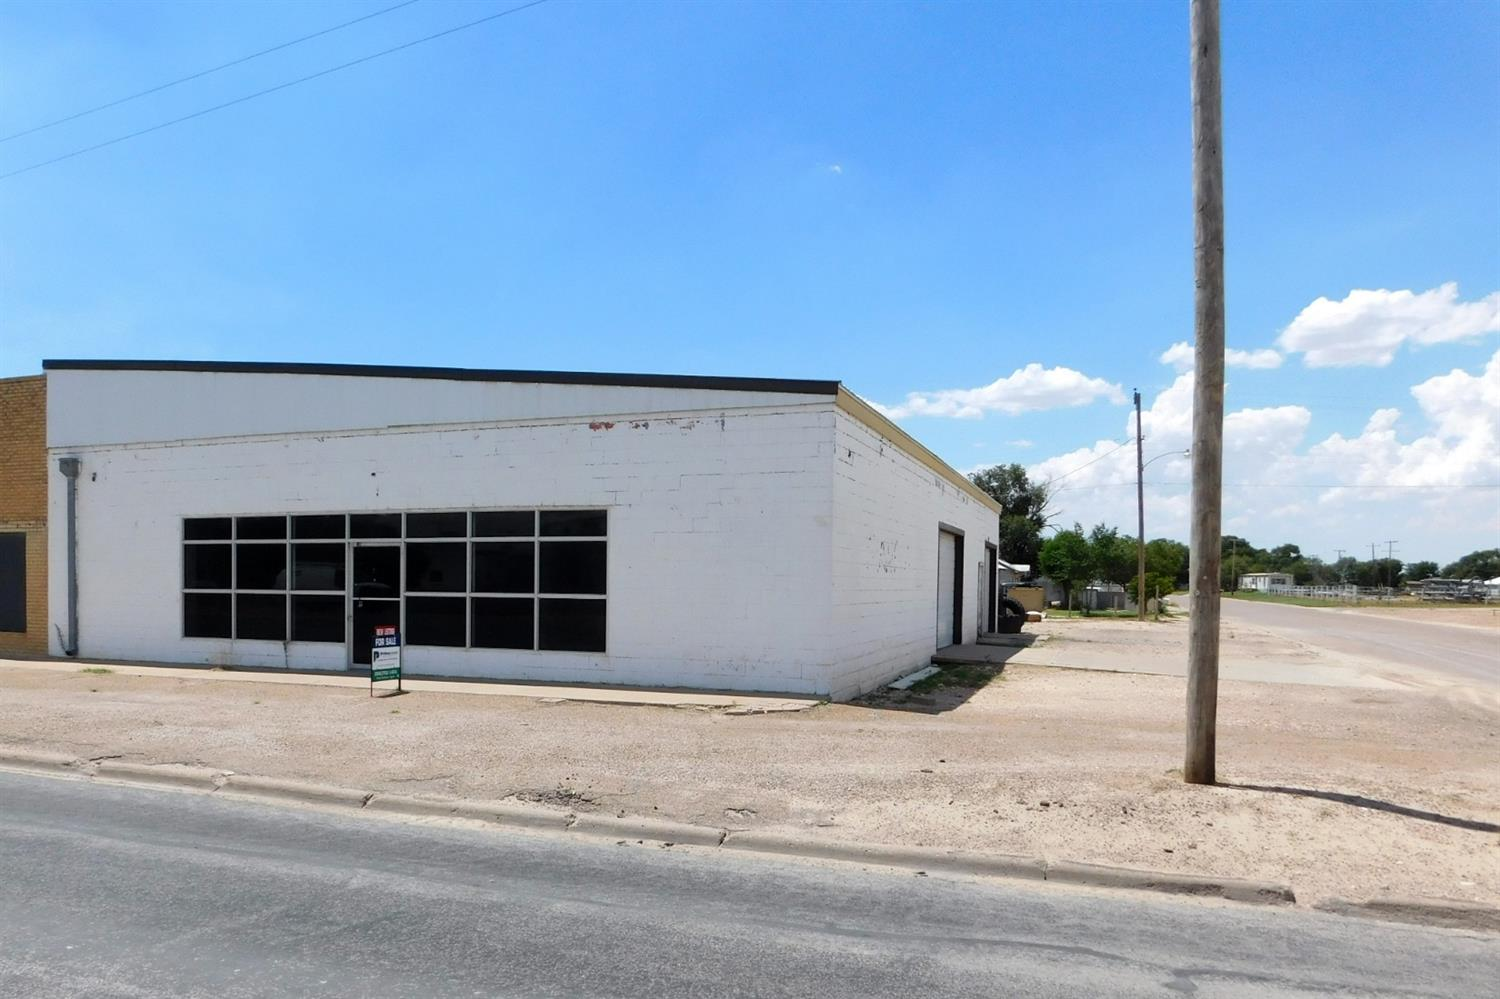 4000 square foot commercial building with open floor plan. Large span of free space, heating unit, office space, 2 overhead doors, glass storefront and bathroom. Corner lot on a major thoroughfare!